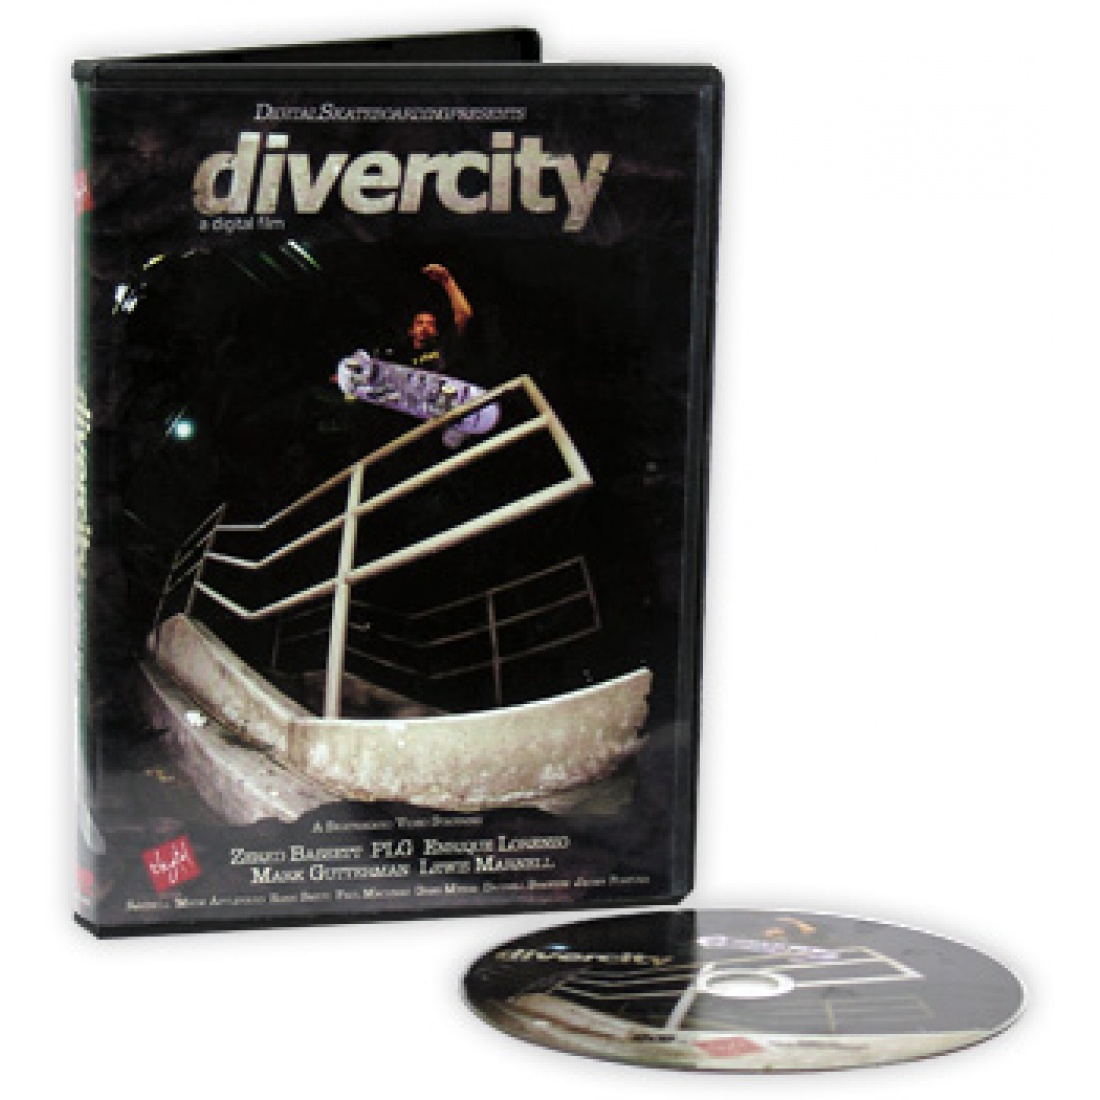 Digital Diversity DVD